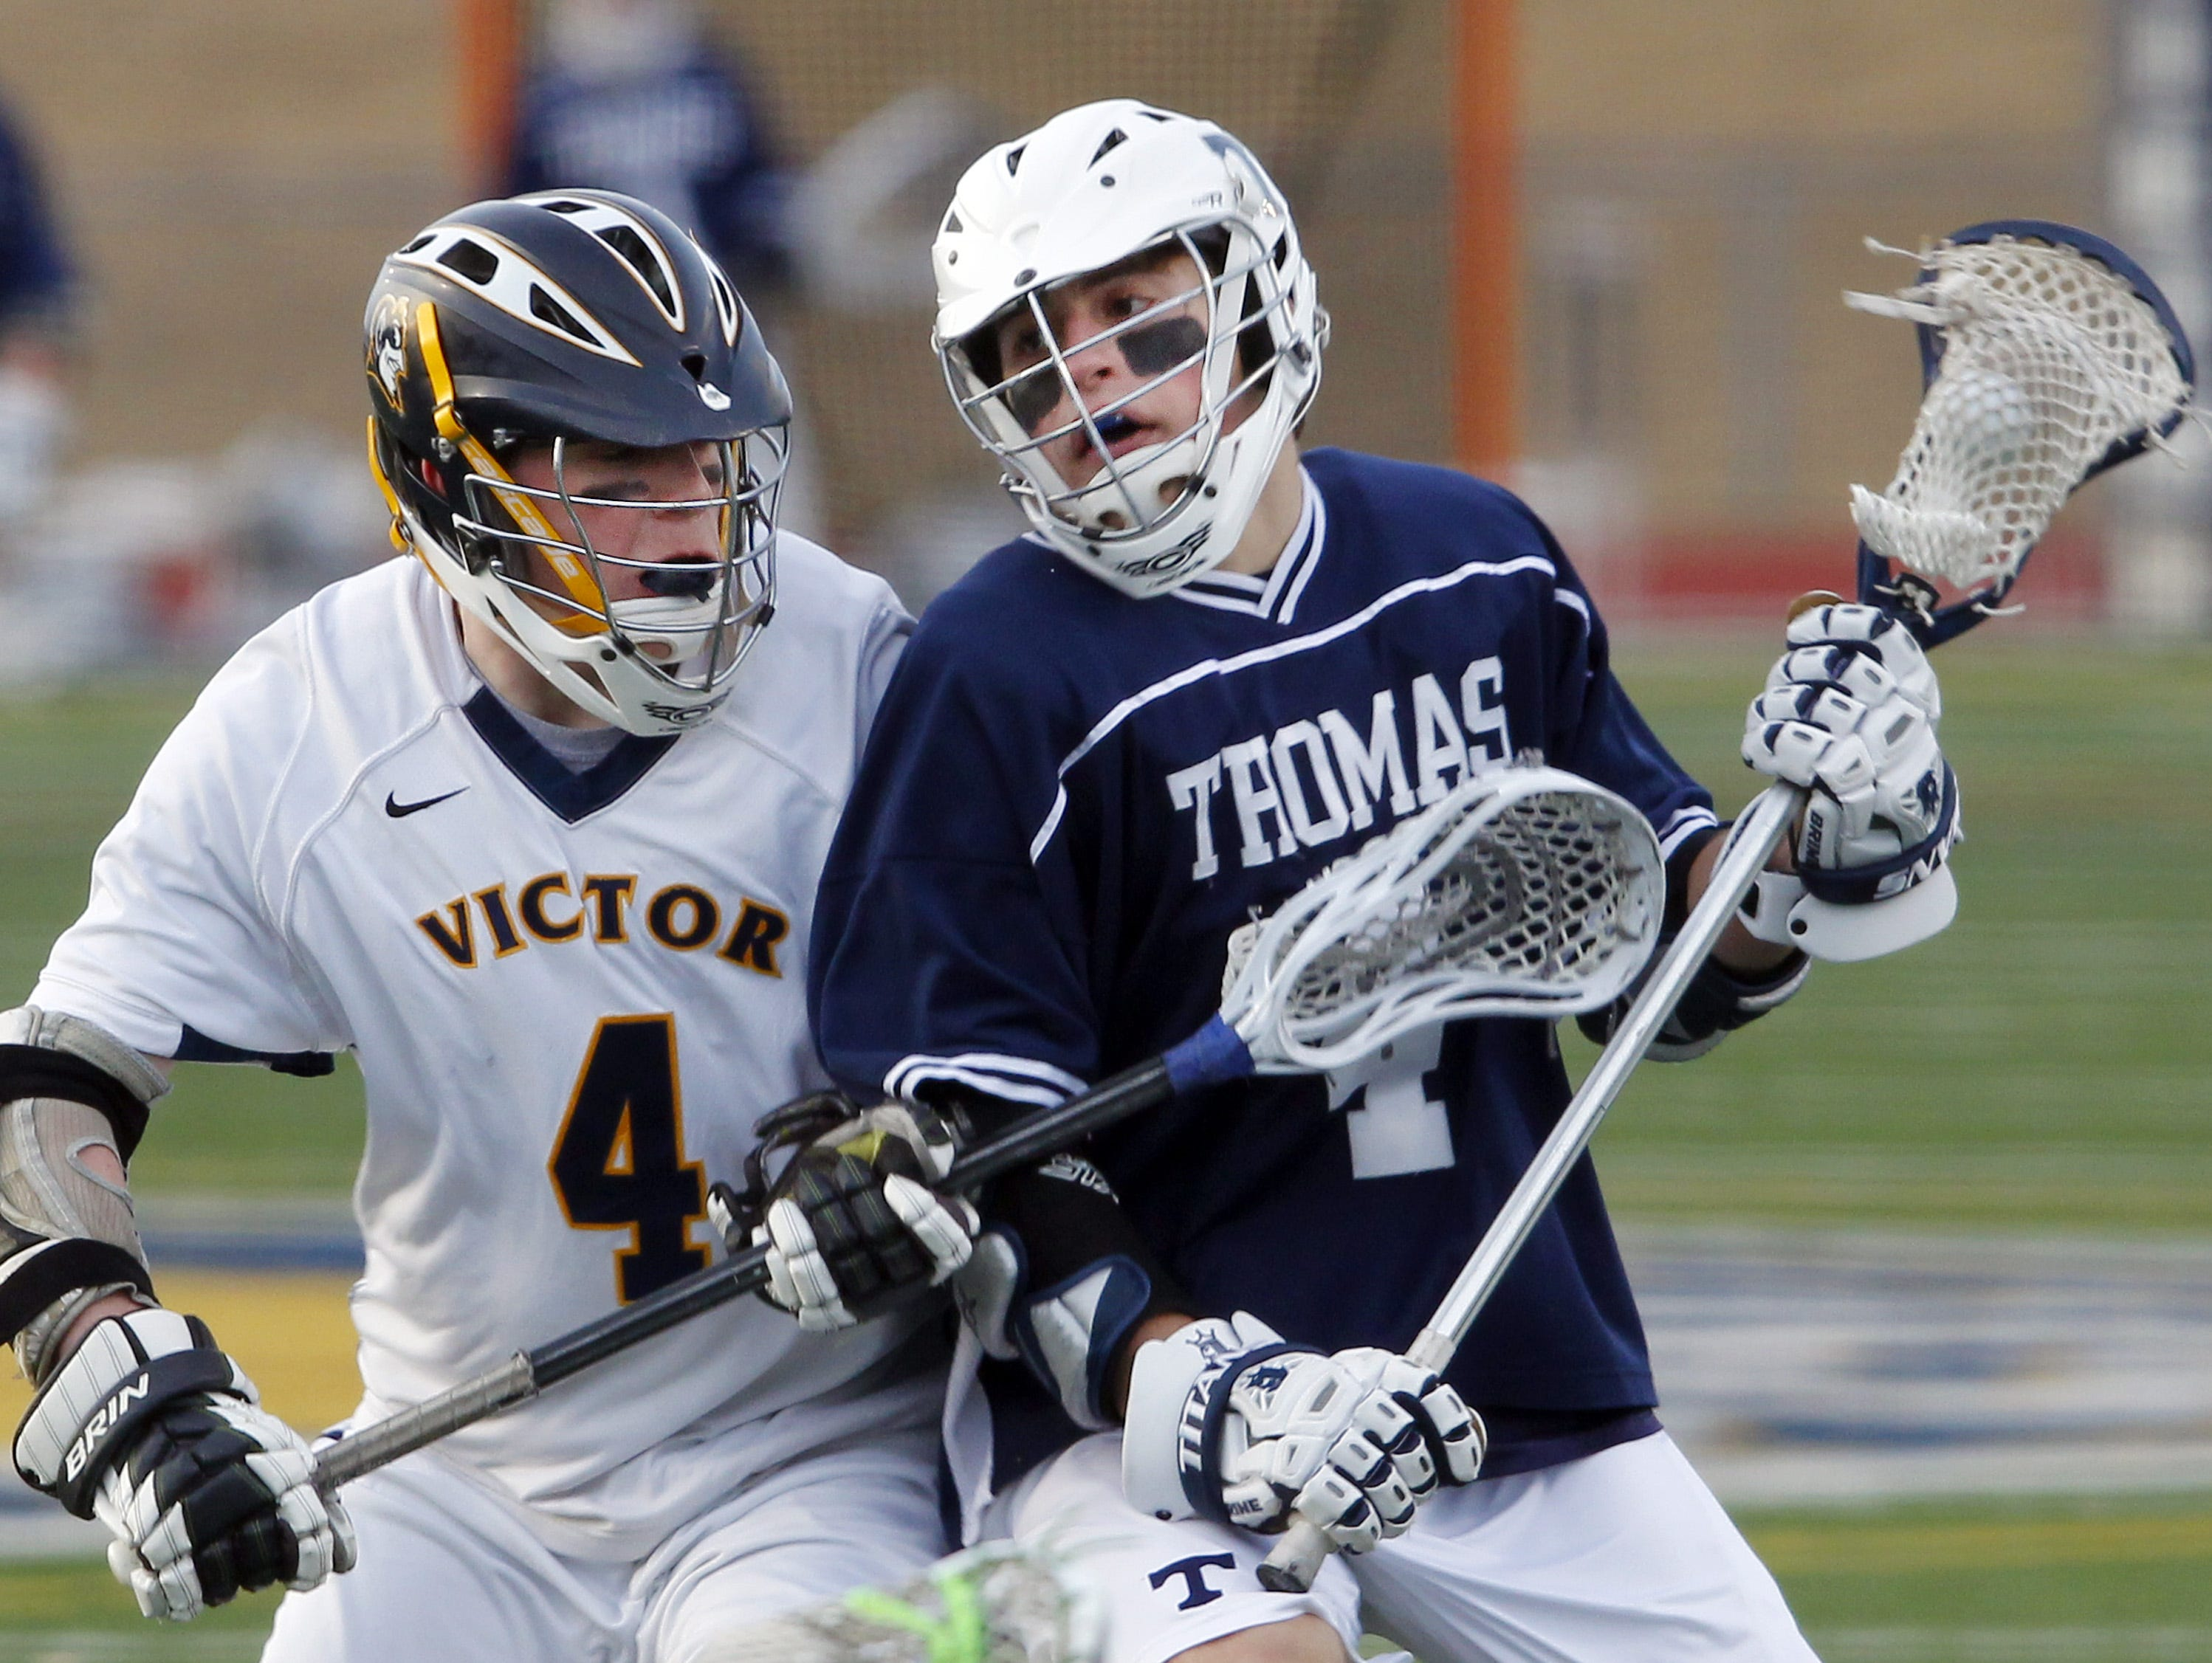 2015 Webster Thomas midfielder Kevin Hill, has committed to play at Penn State.